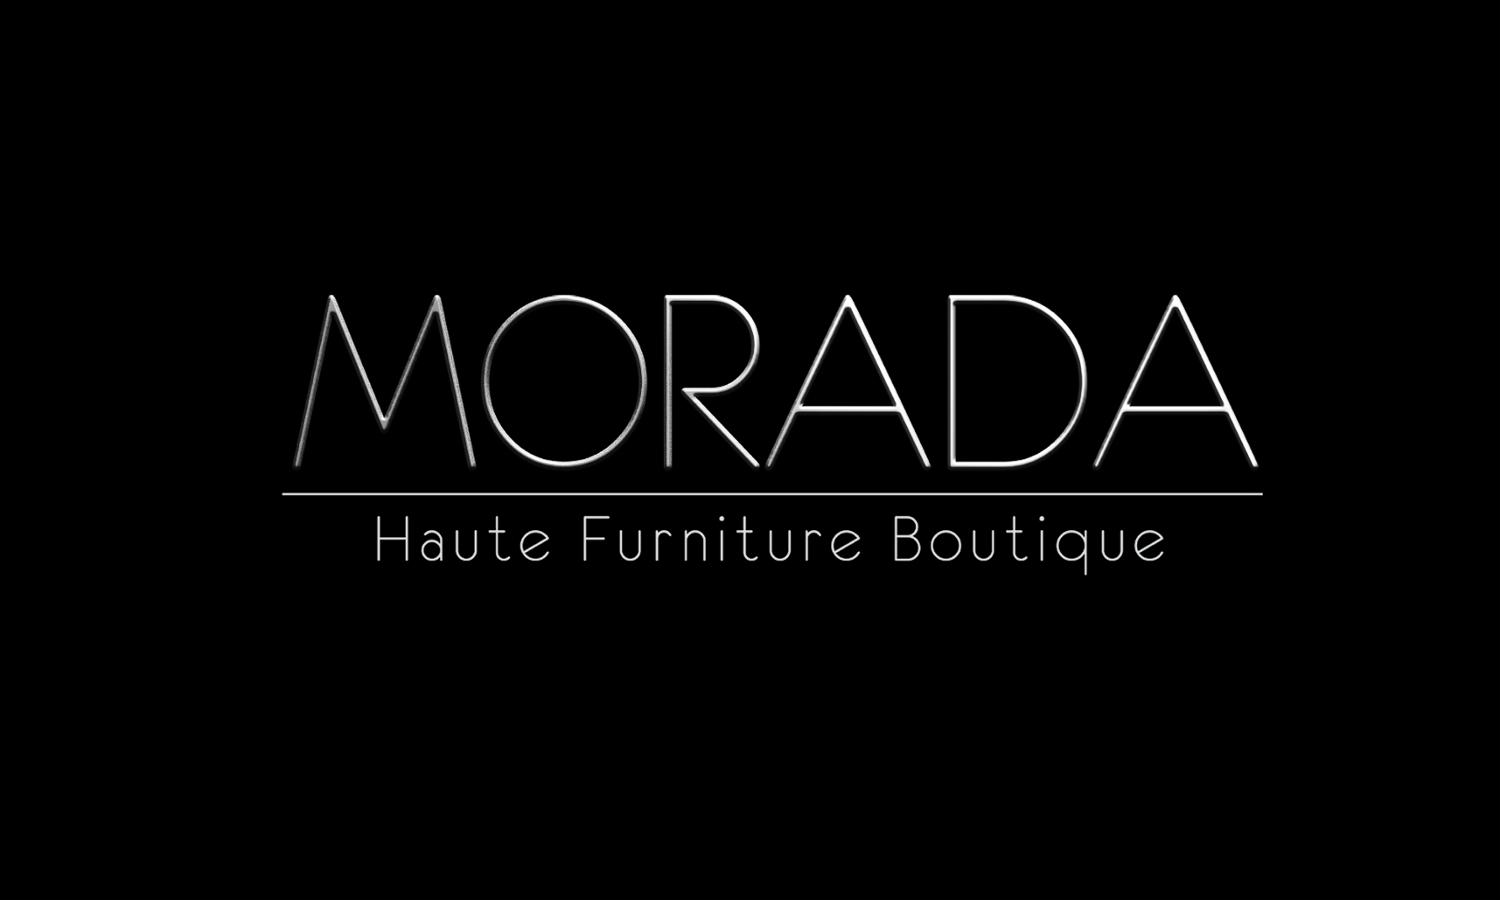 Morada-Haute Furniture